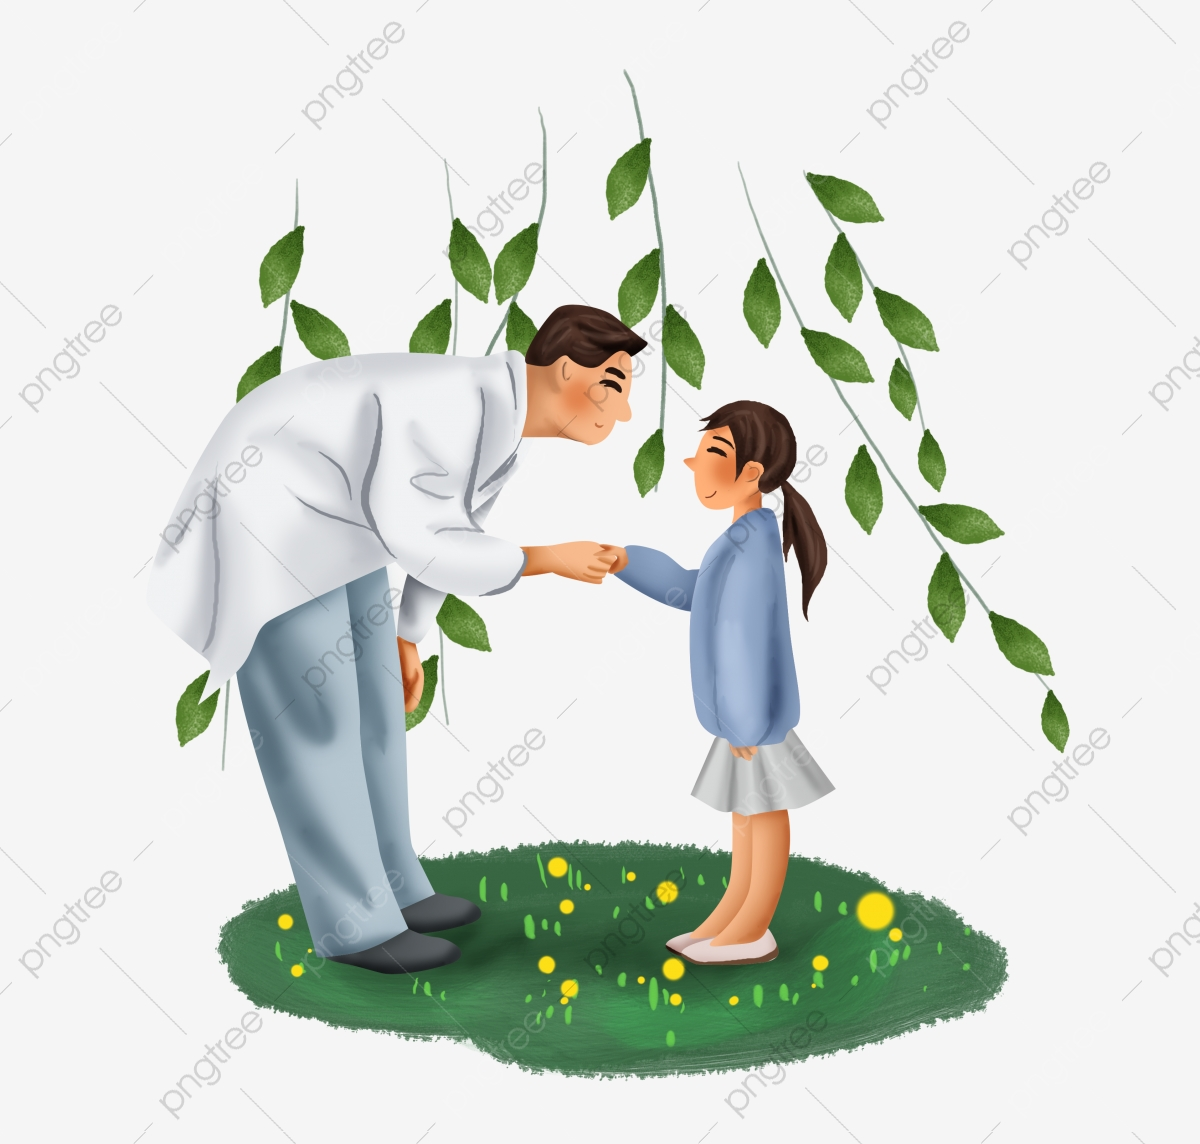 doctors clipart medical doctor